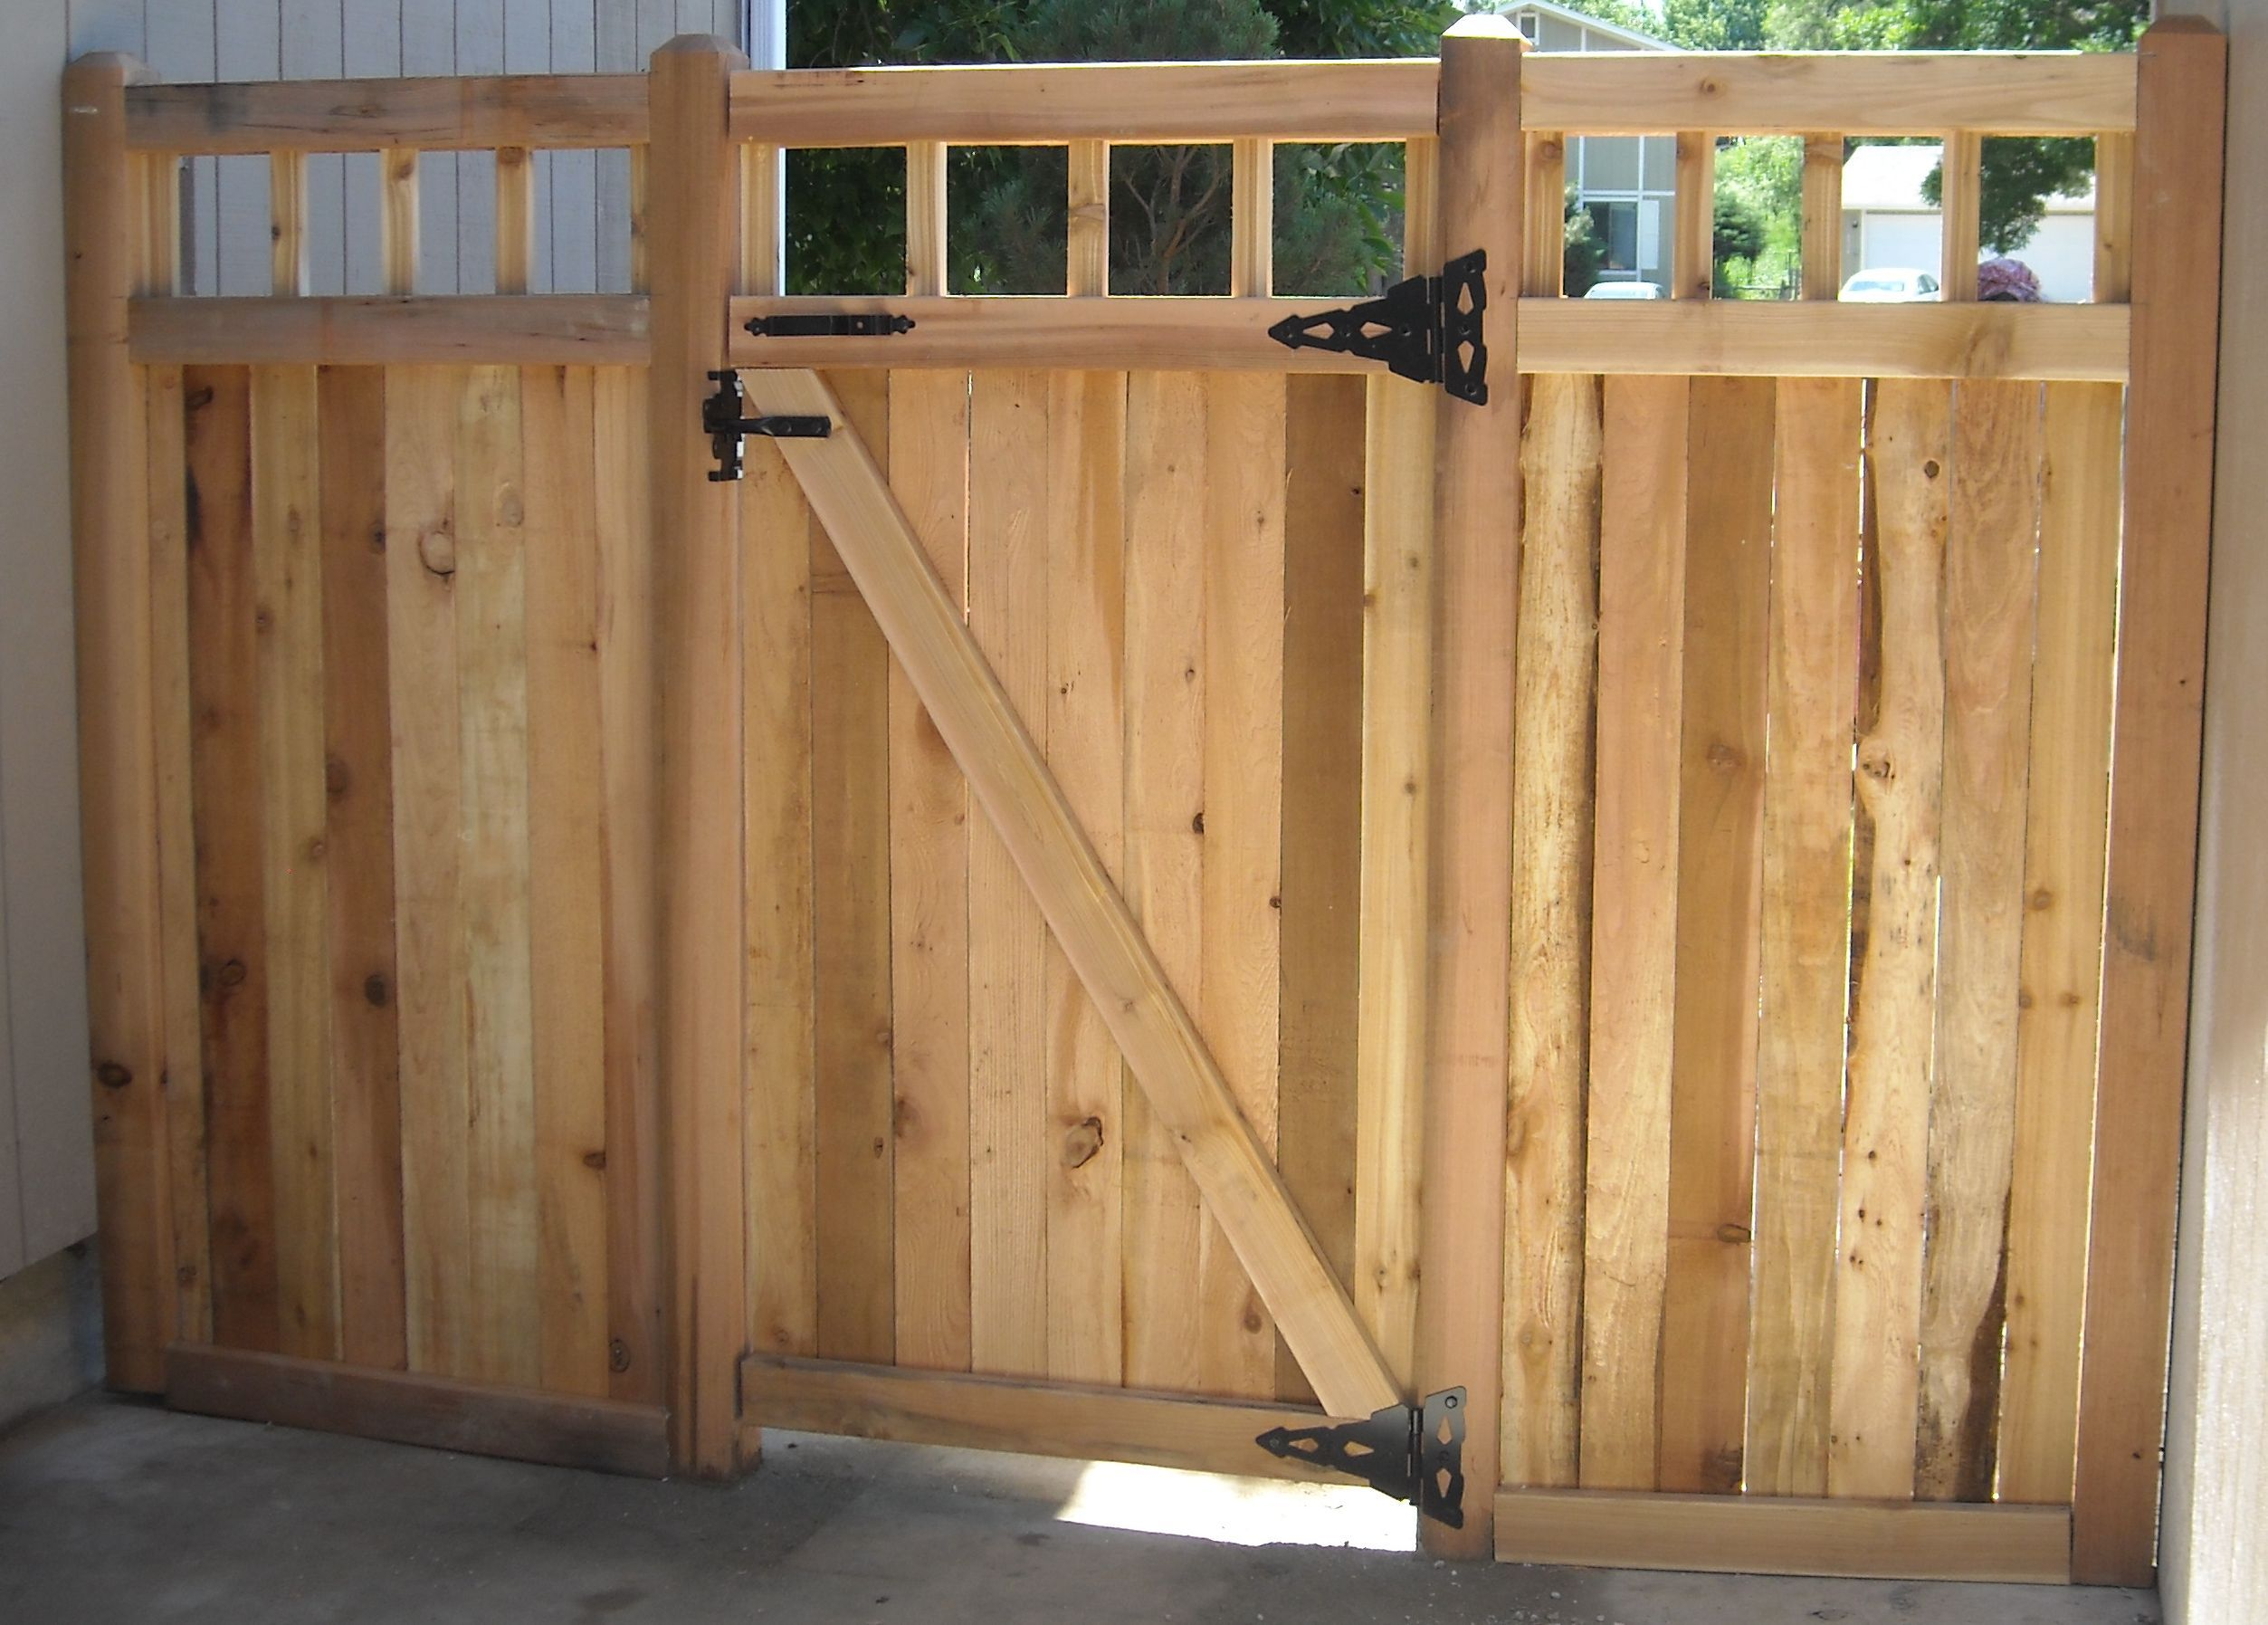 Cedar Gates Can Be Built To Any Size From Walk Gates To Double Drive Gates.  All Gates Can Come In Different Opening Styles Including Swing, Double  Swing,